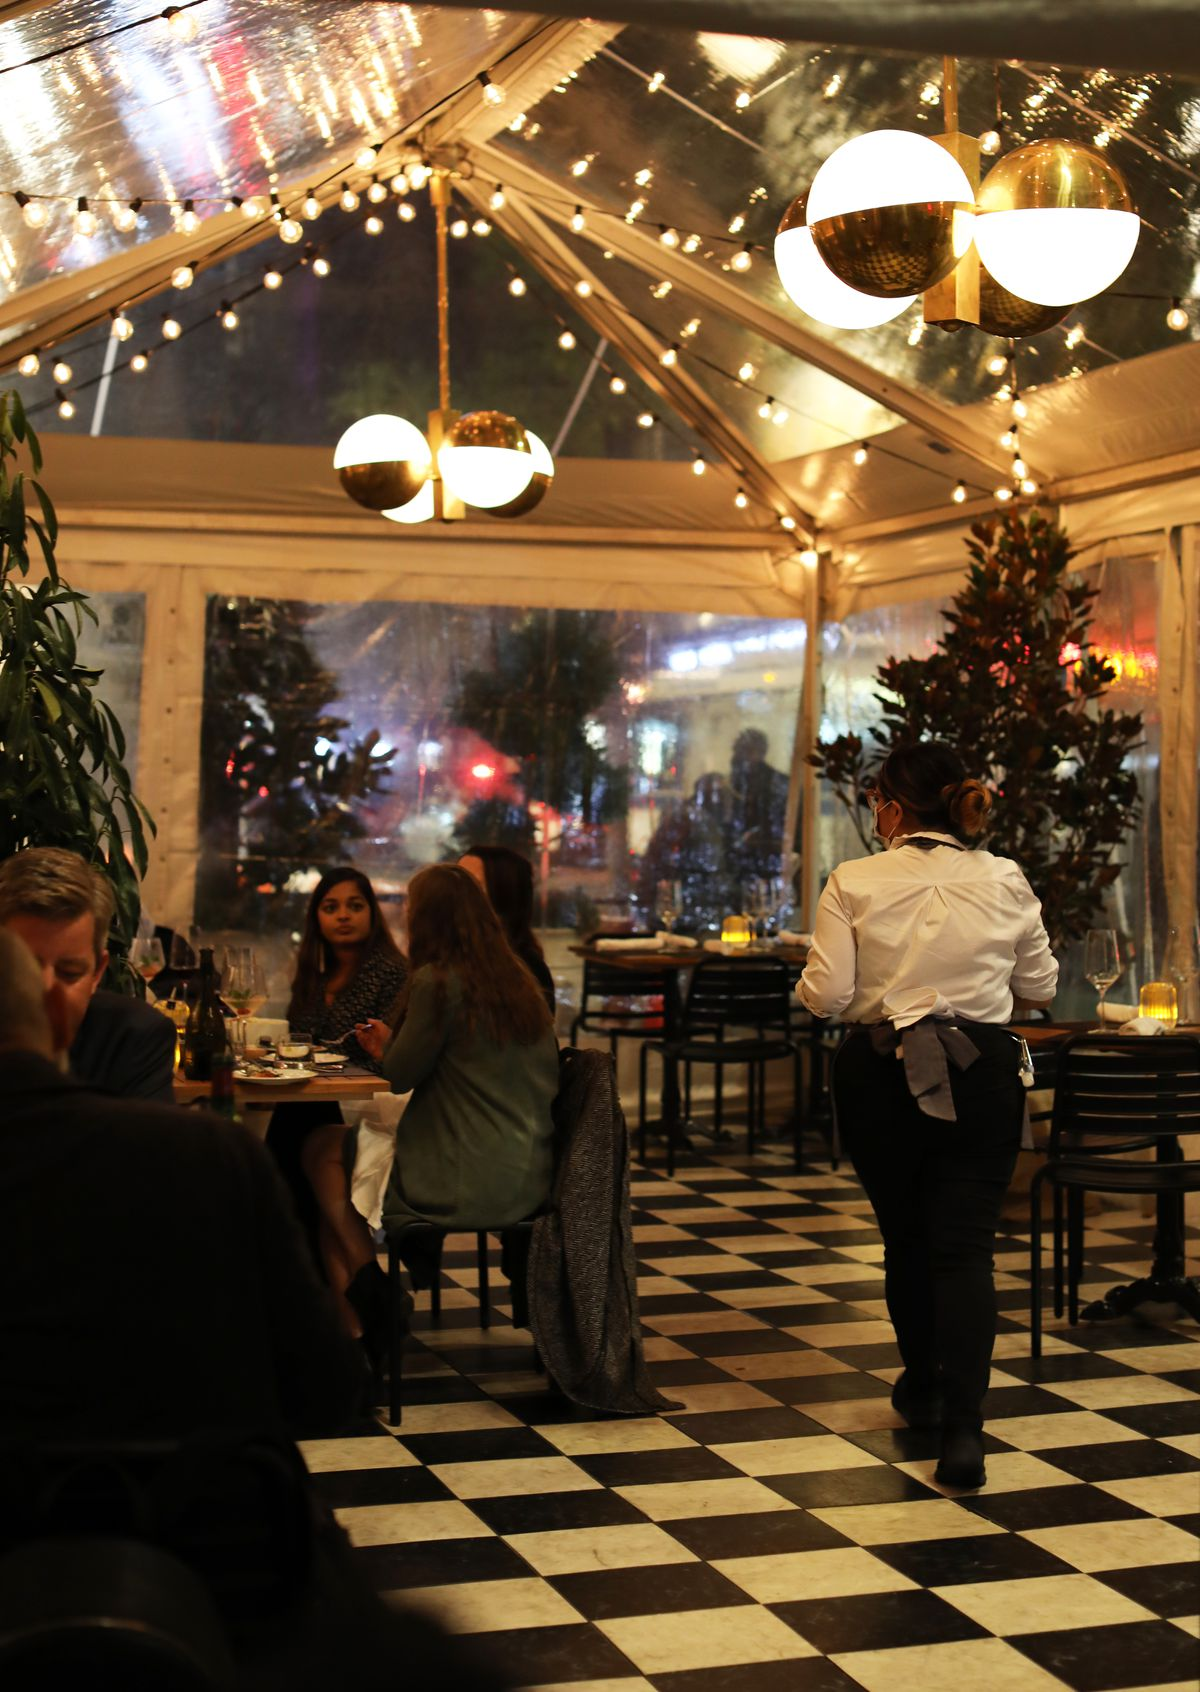 Diners sit and eat at tables positioned inside a white tent with chandeliers and string lights